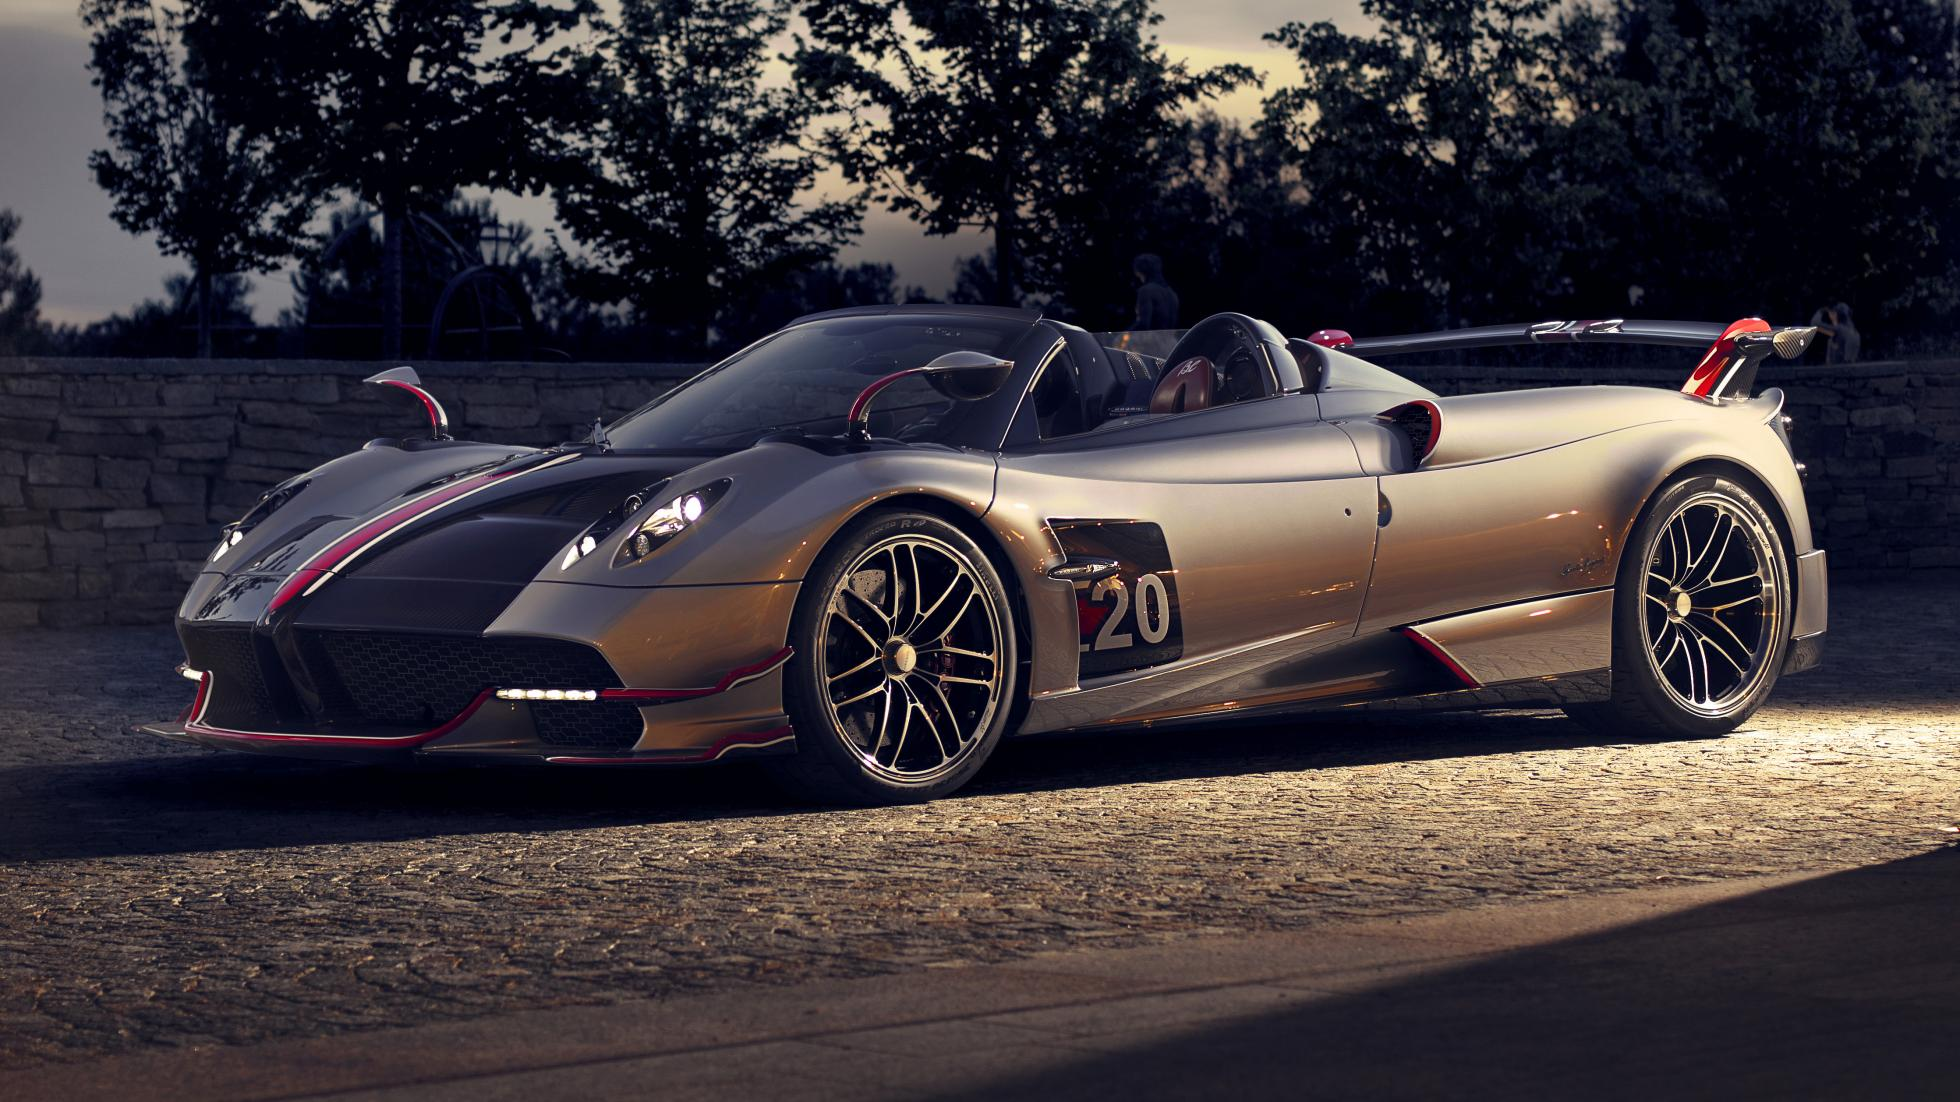 Pagani Huayra Roadster BC, hypercar, 800-HP, luxury, billionaire, vip, speed, most-expensive model, First Look, youtube, video, Pagani, Roadster BC, Monterey Car Week, top styling, powerful engine, impressive stats, 6.0-liter AMG V12, rear wheel, gearbox, Xtrac, top car, luxury car, luxurious, lifestyle